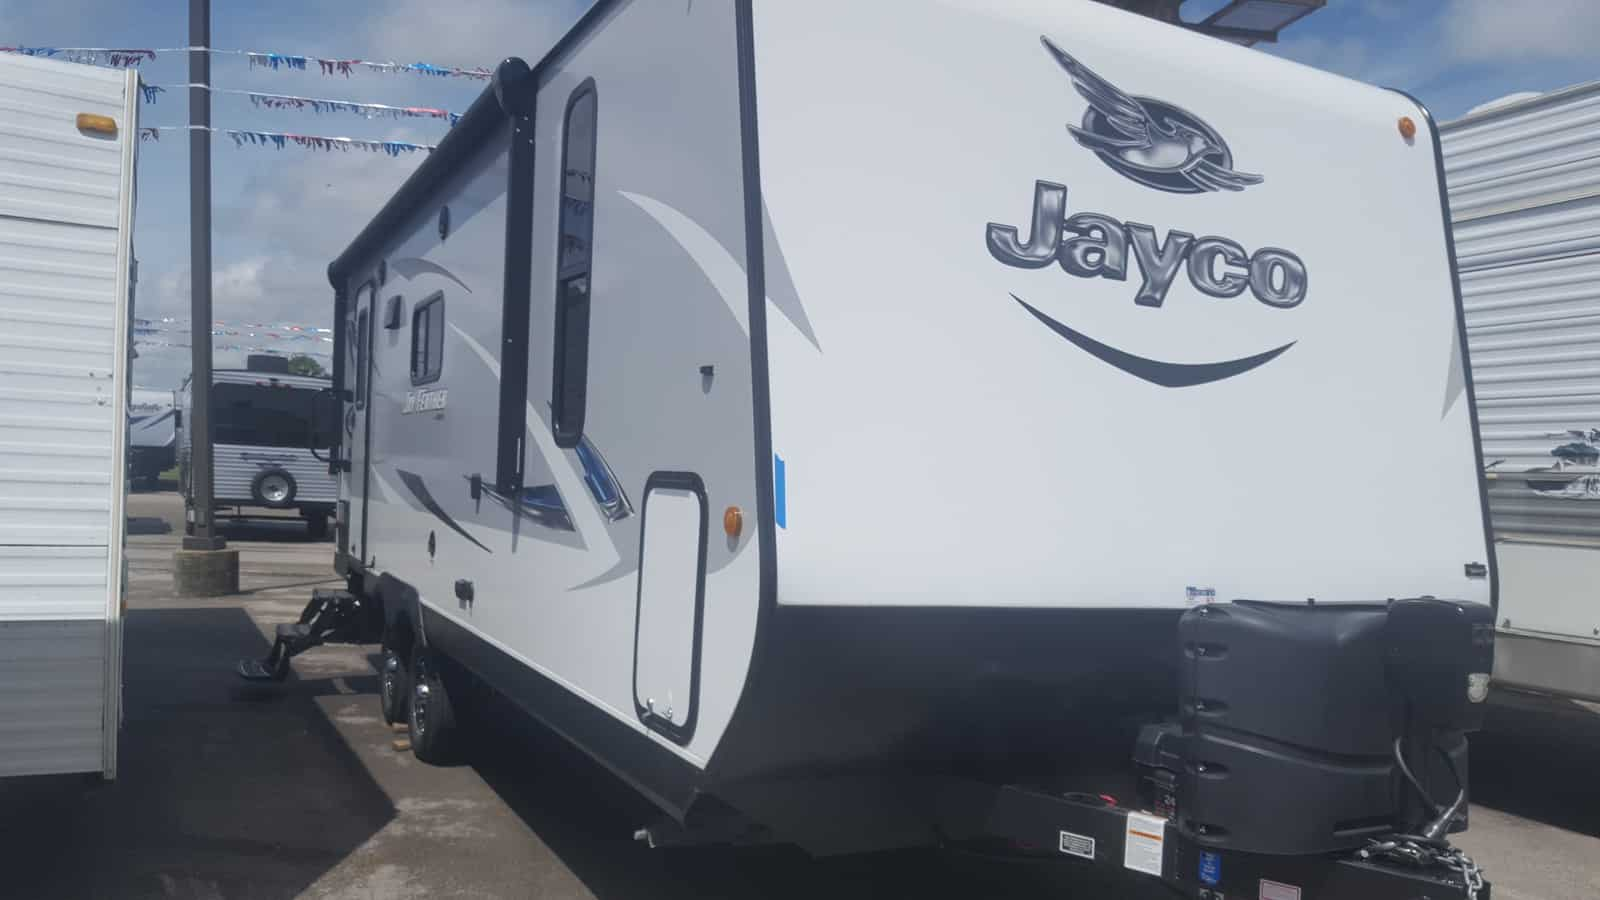 USED 2017 Jayco JAY FEATHER 23RMB - American RV